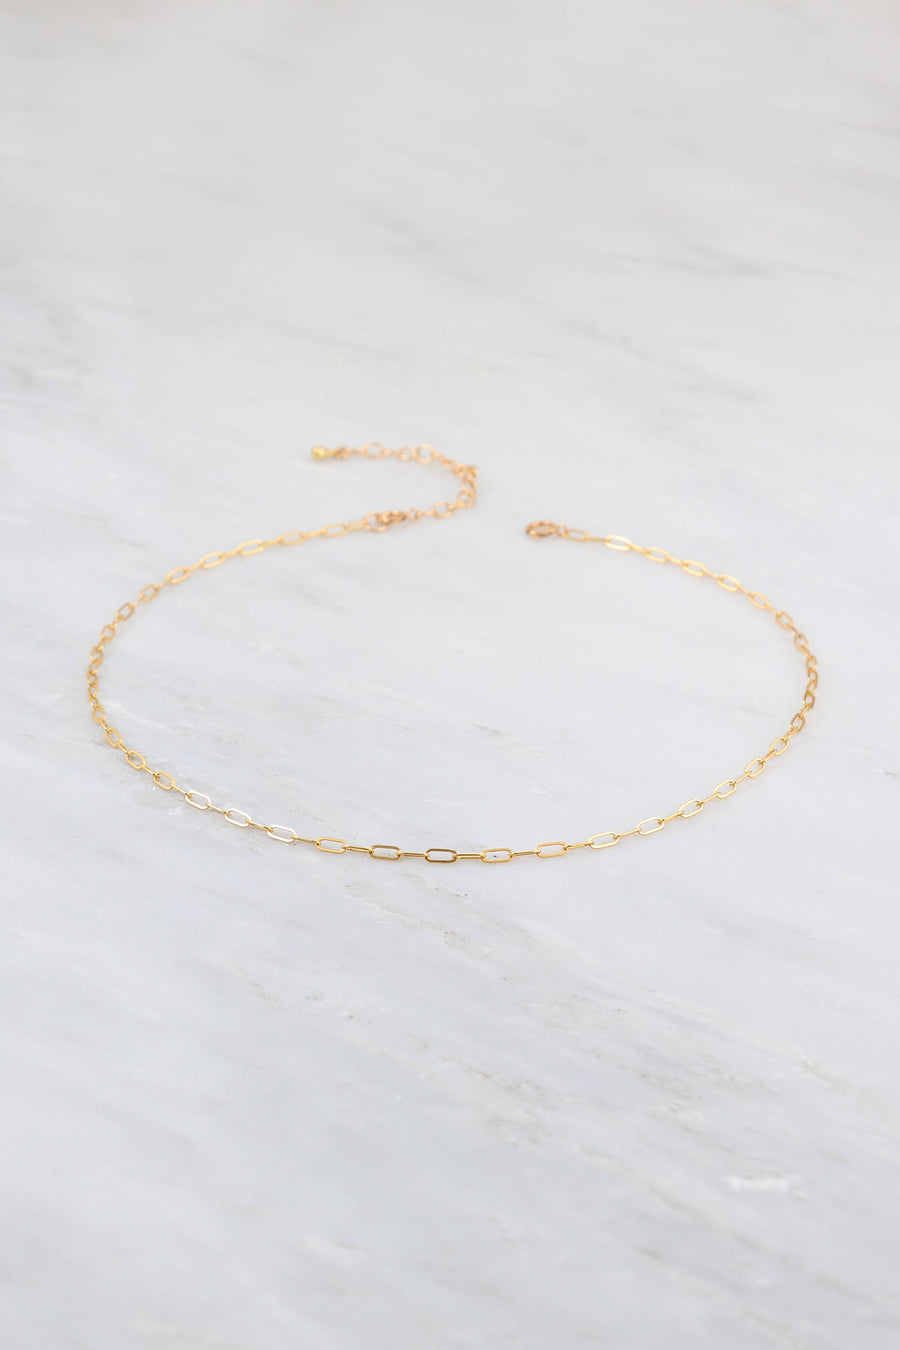 Delicate Gold Choker, Simple Choker Necklace, Chain Choker Necklace, Minimalist Choker, Gold Filled Choker Chain, Jewelry Gift for her